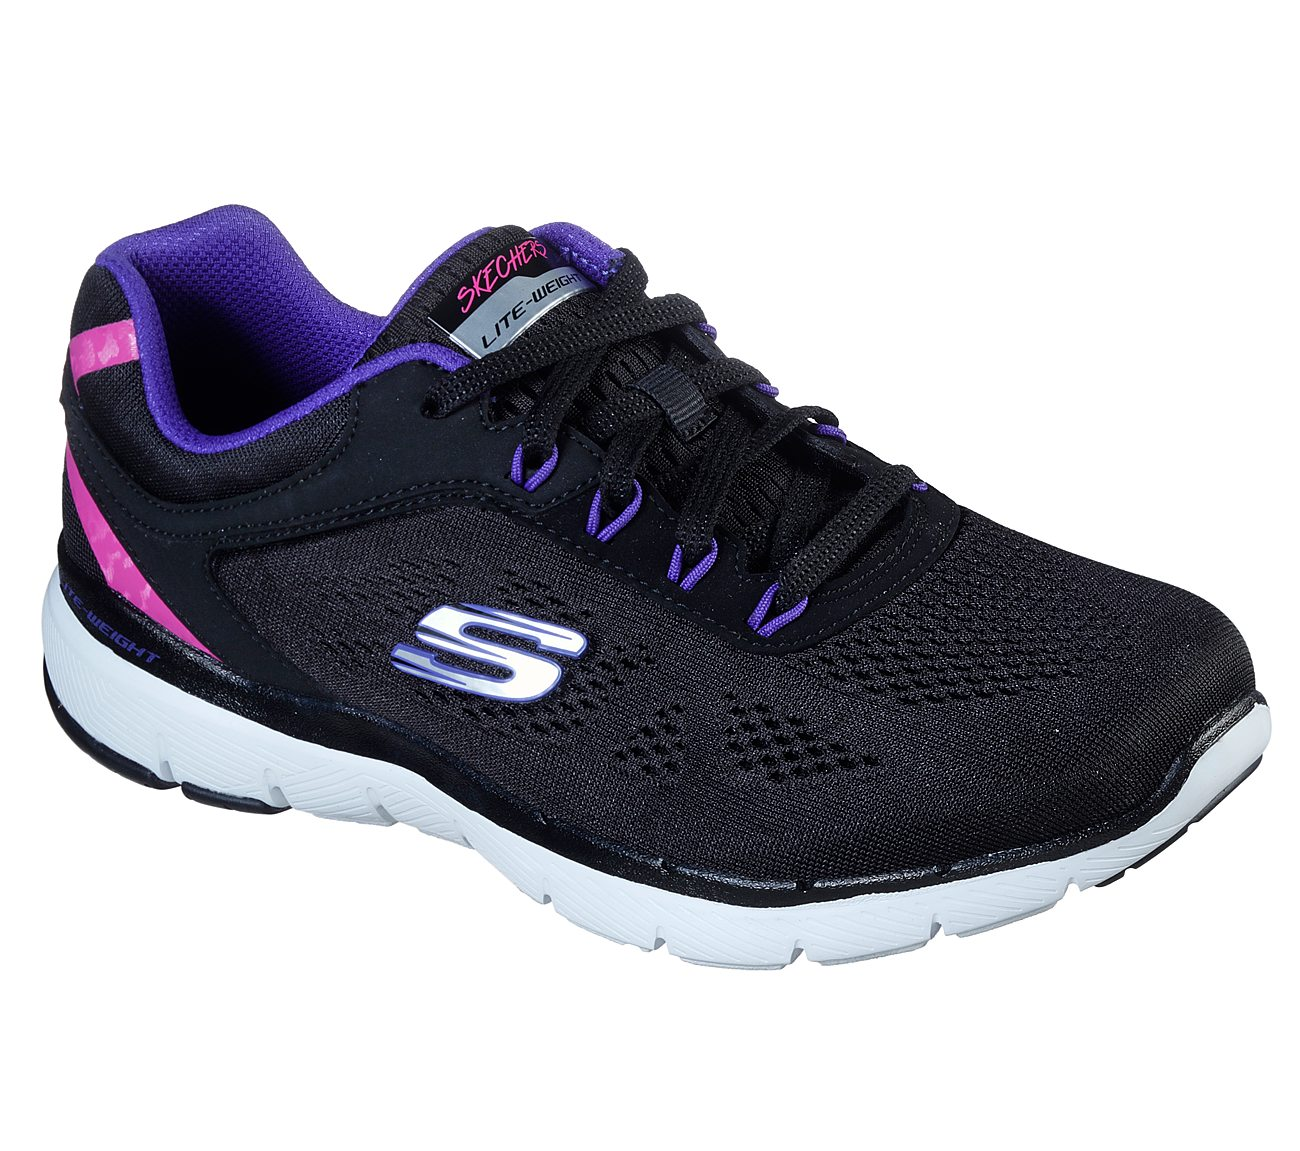 Buy SKECHERS Flex Appeal 3.0 - Steady